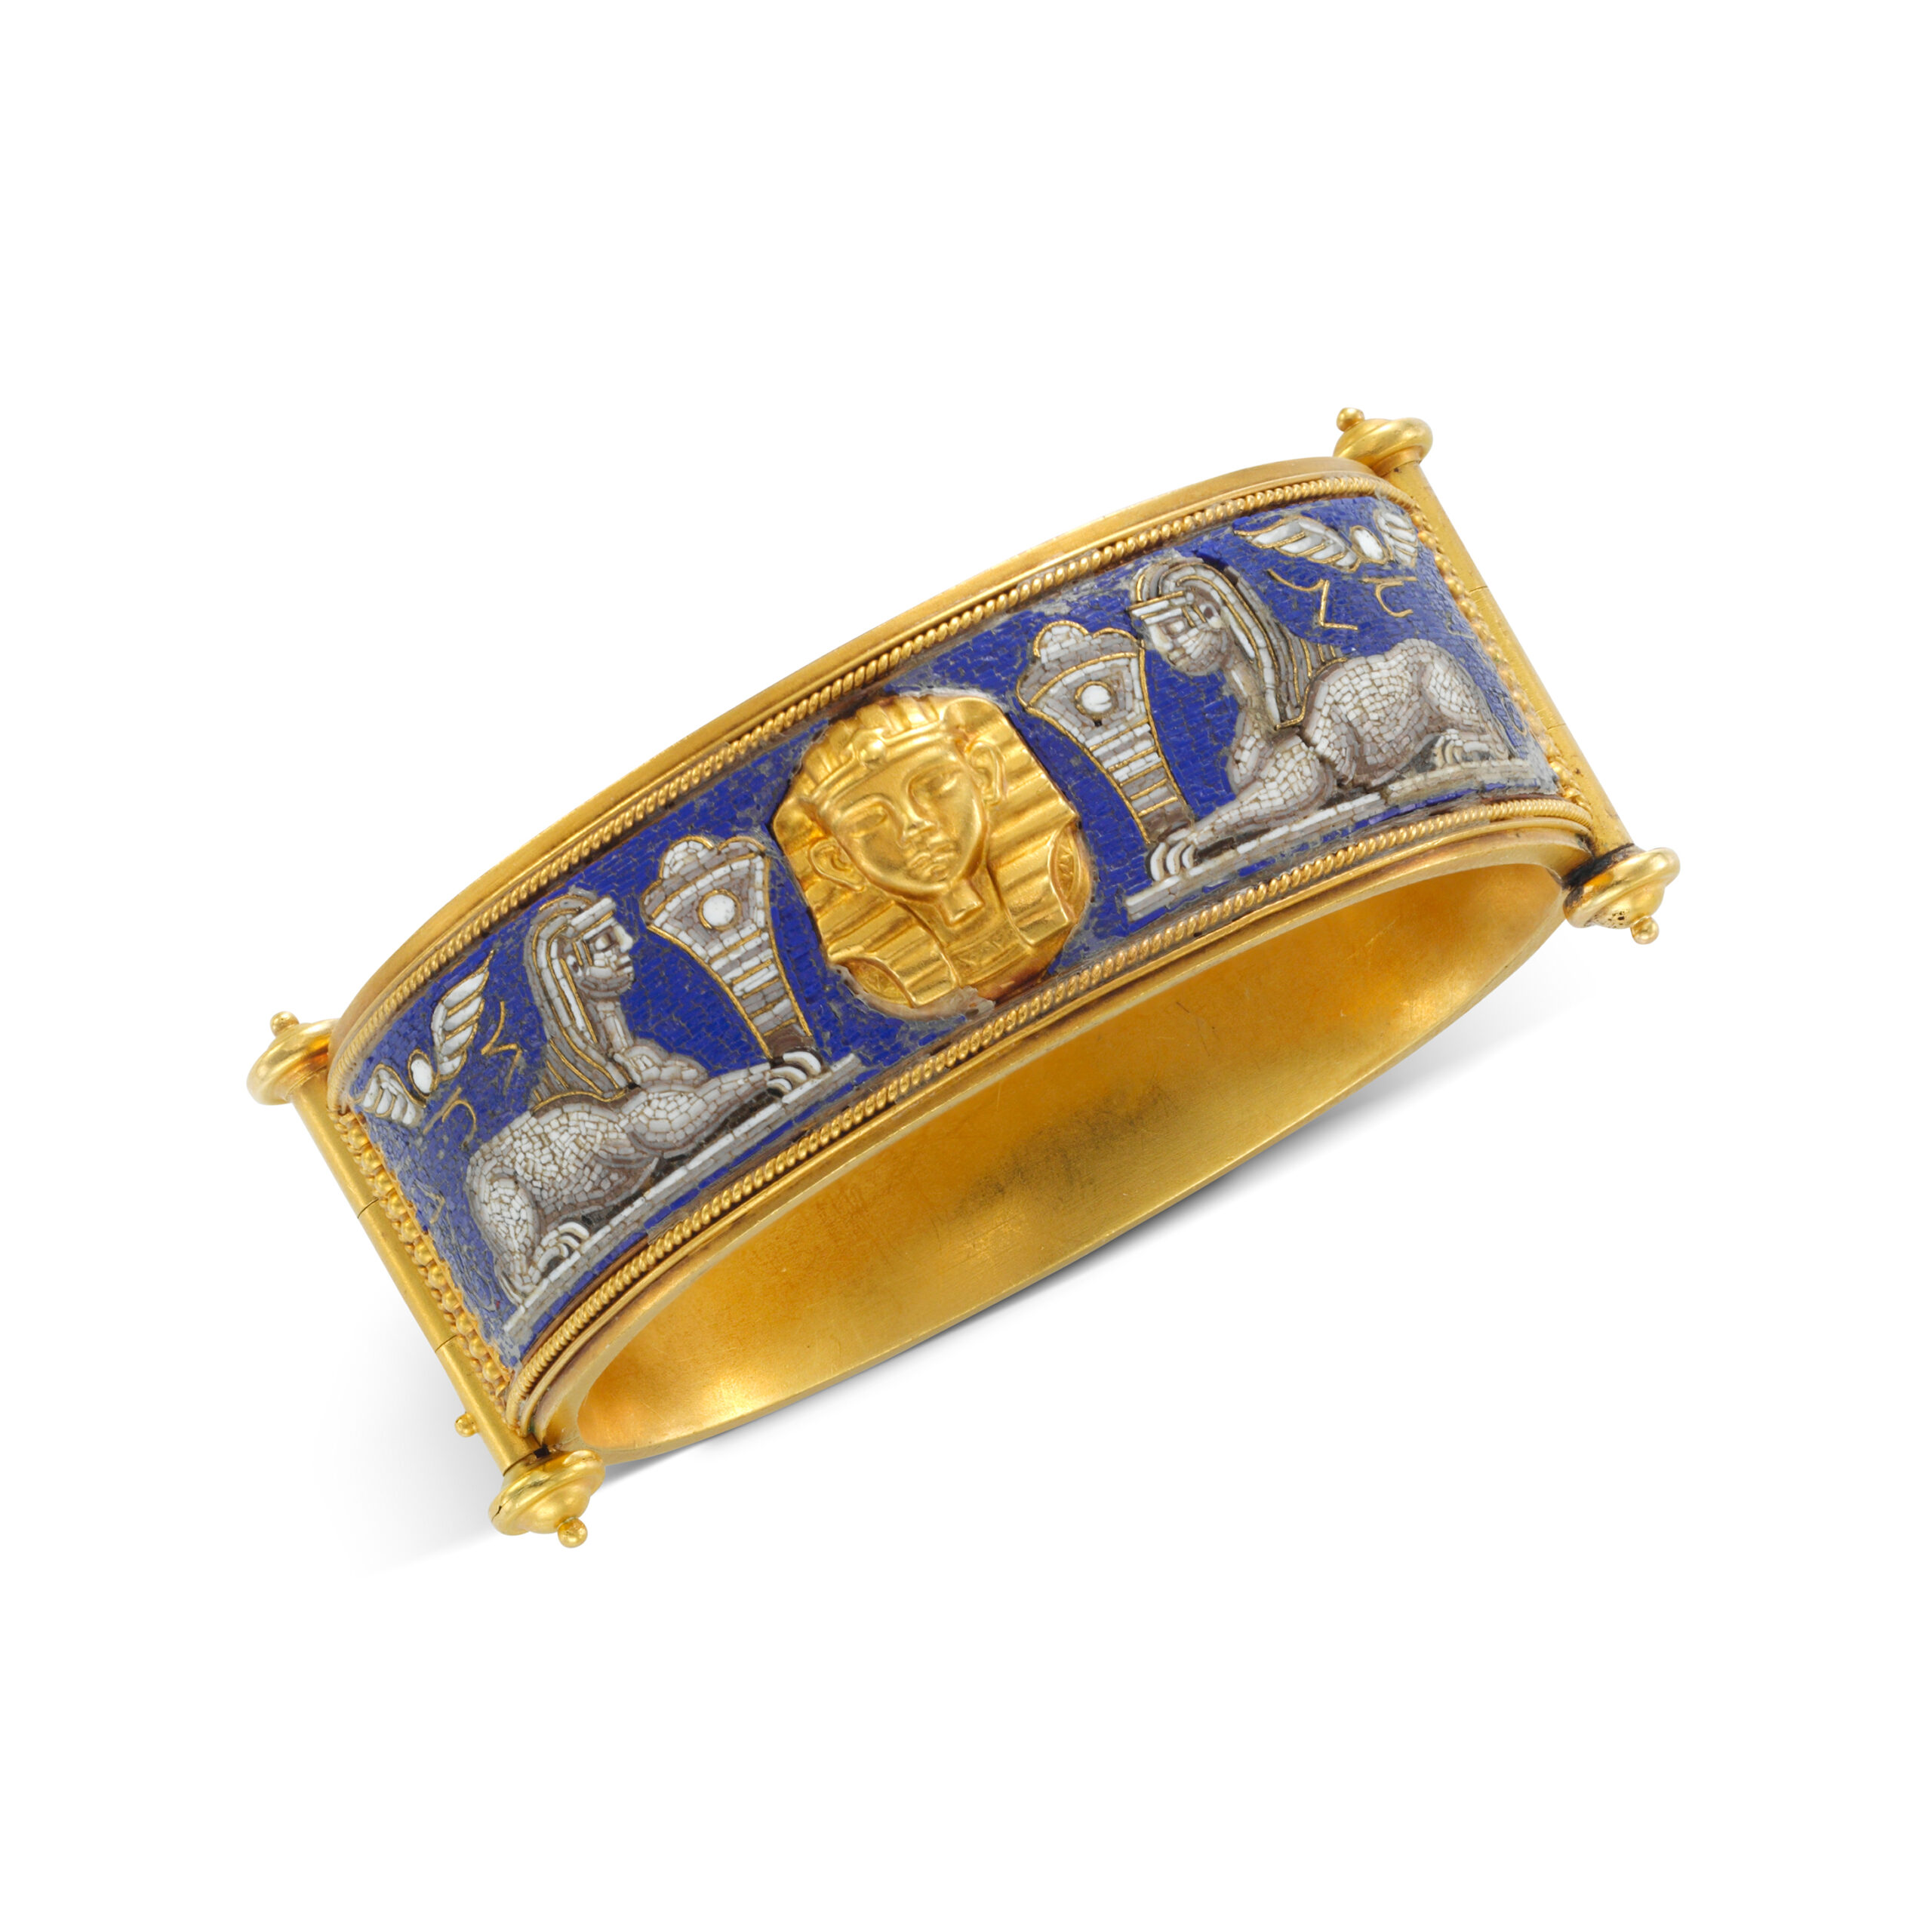 An Egyptian Revival Micromosaic and Gold Bangle Bracelet